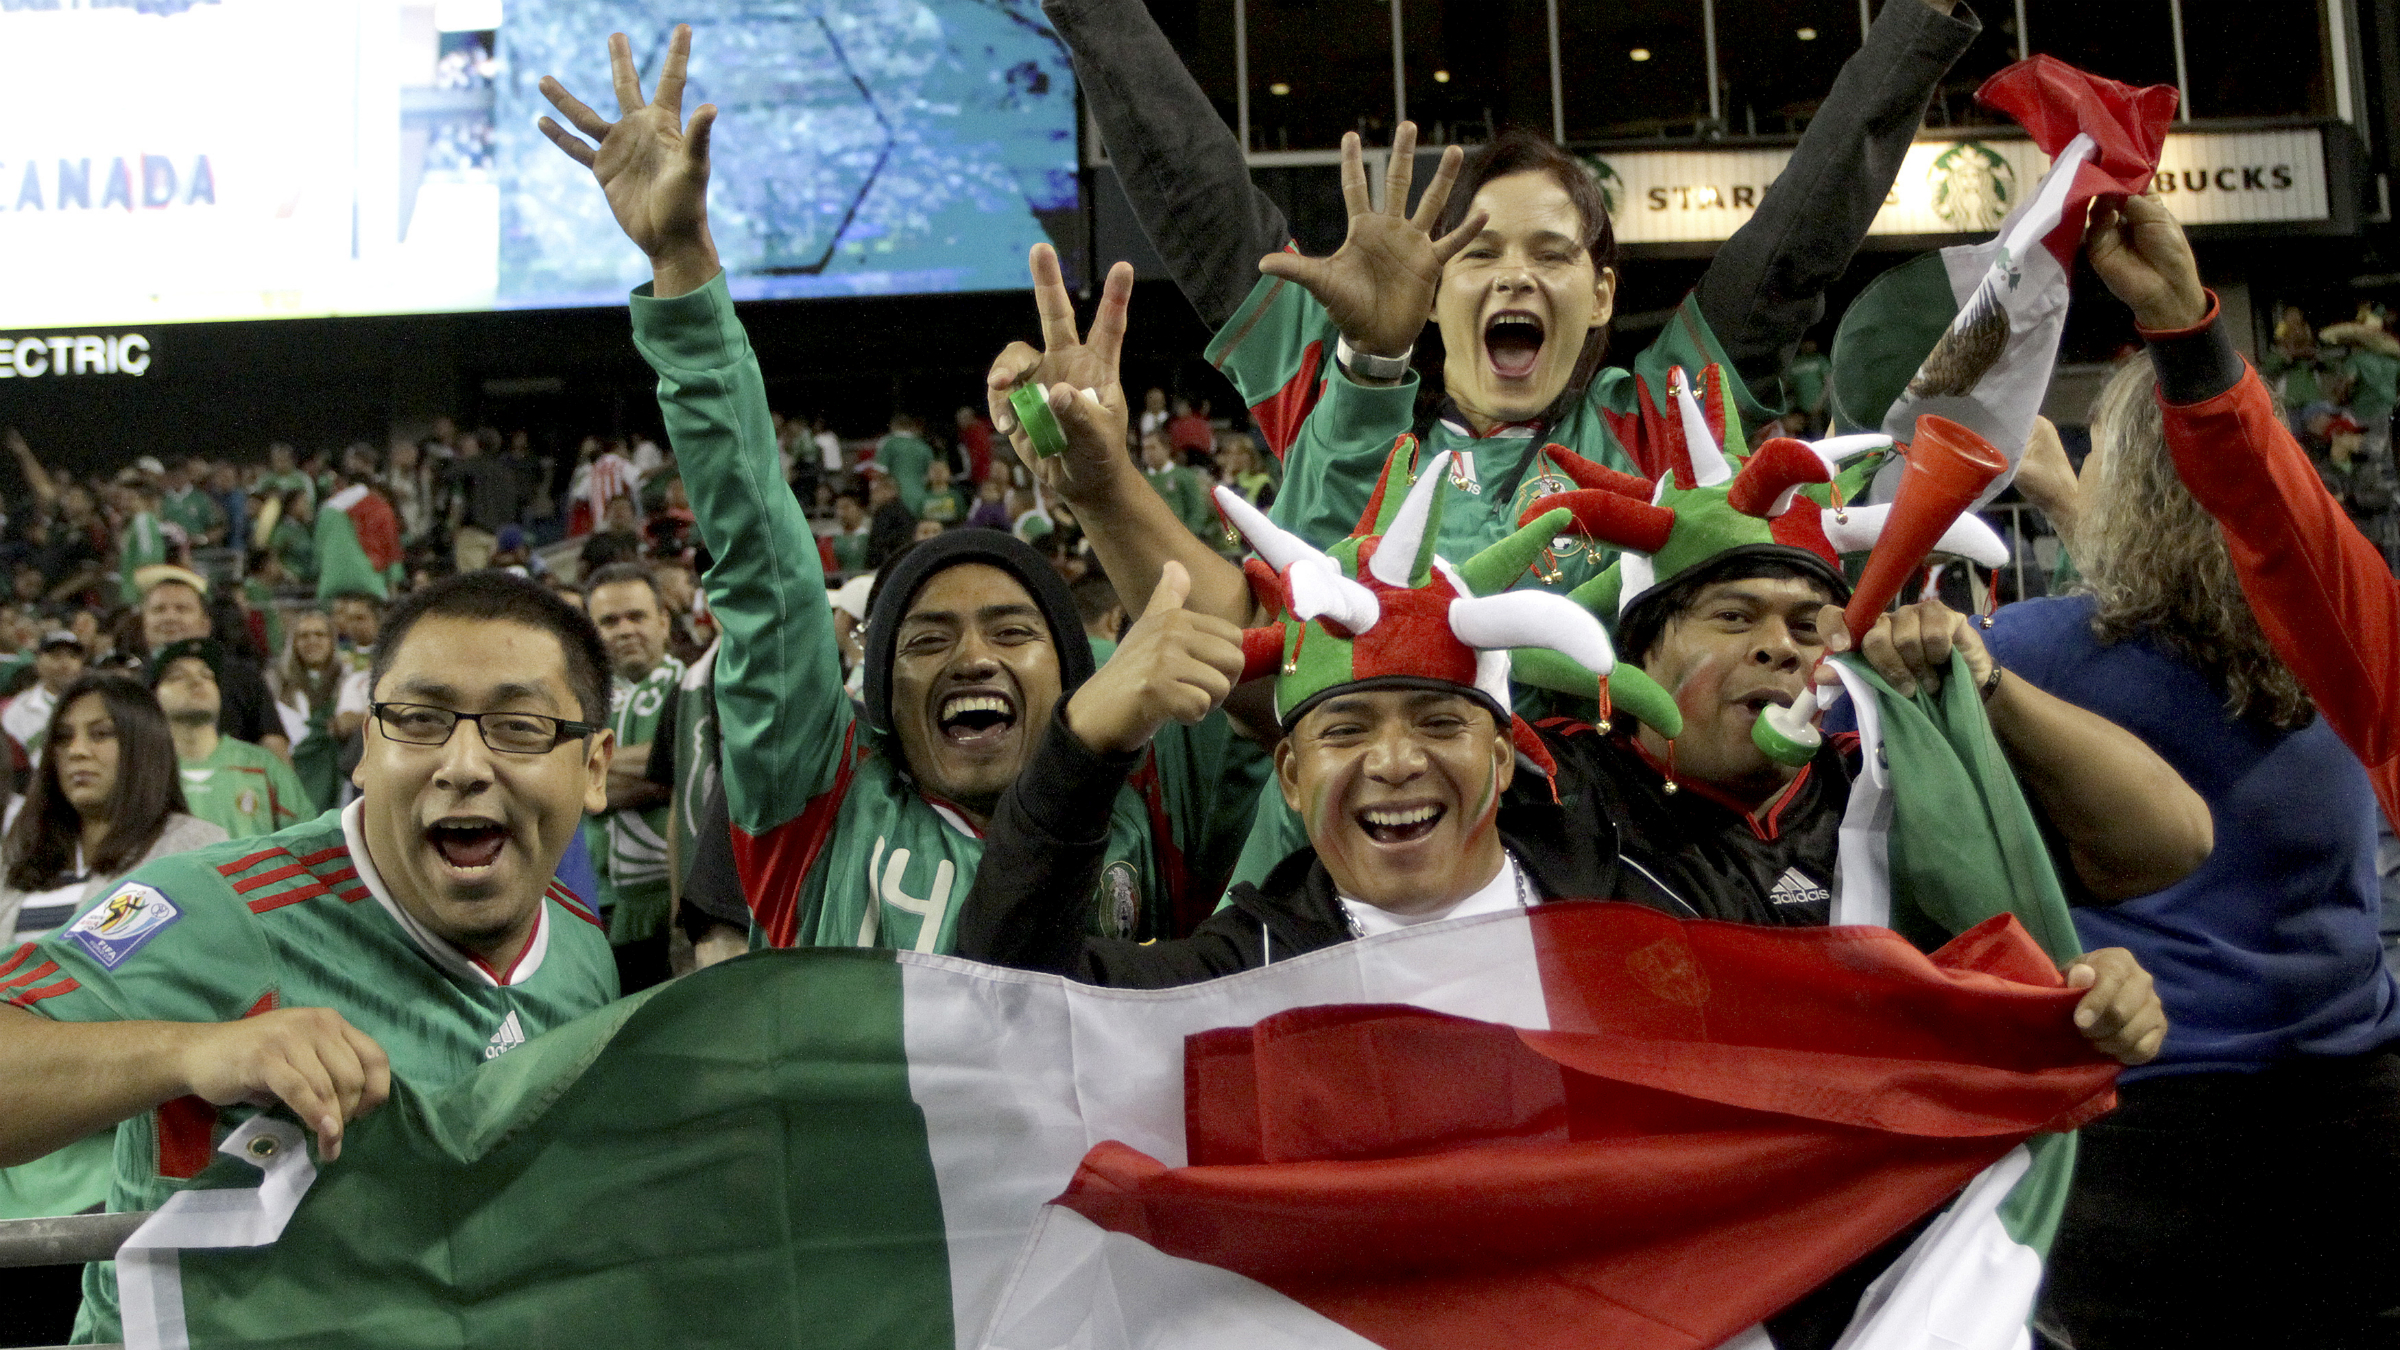 exico fans celebrate the win over Canada in their CONCACAF Gold Cup soccer match in Seattle, Washington July 11, 2013. REUTERS/Marcus Donner